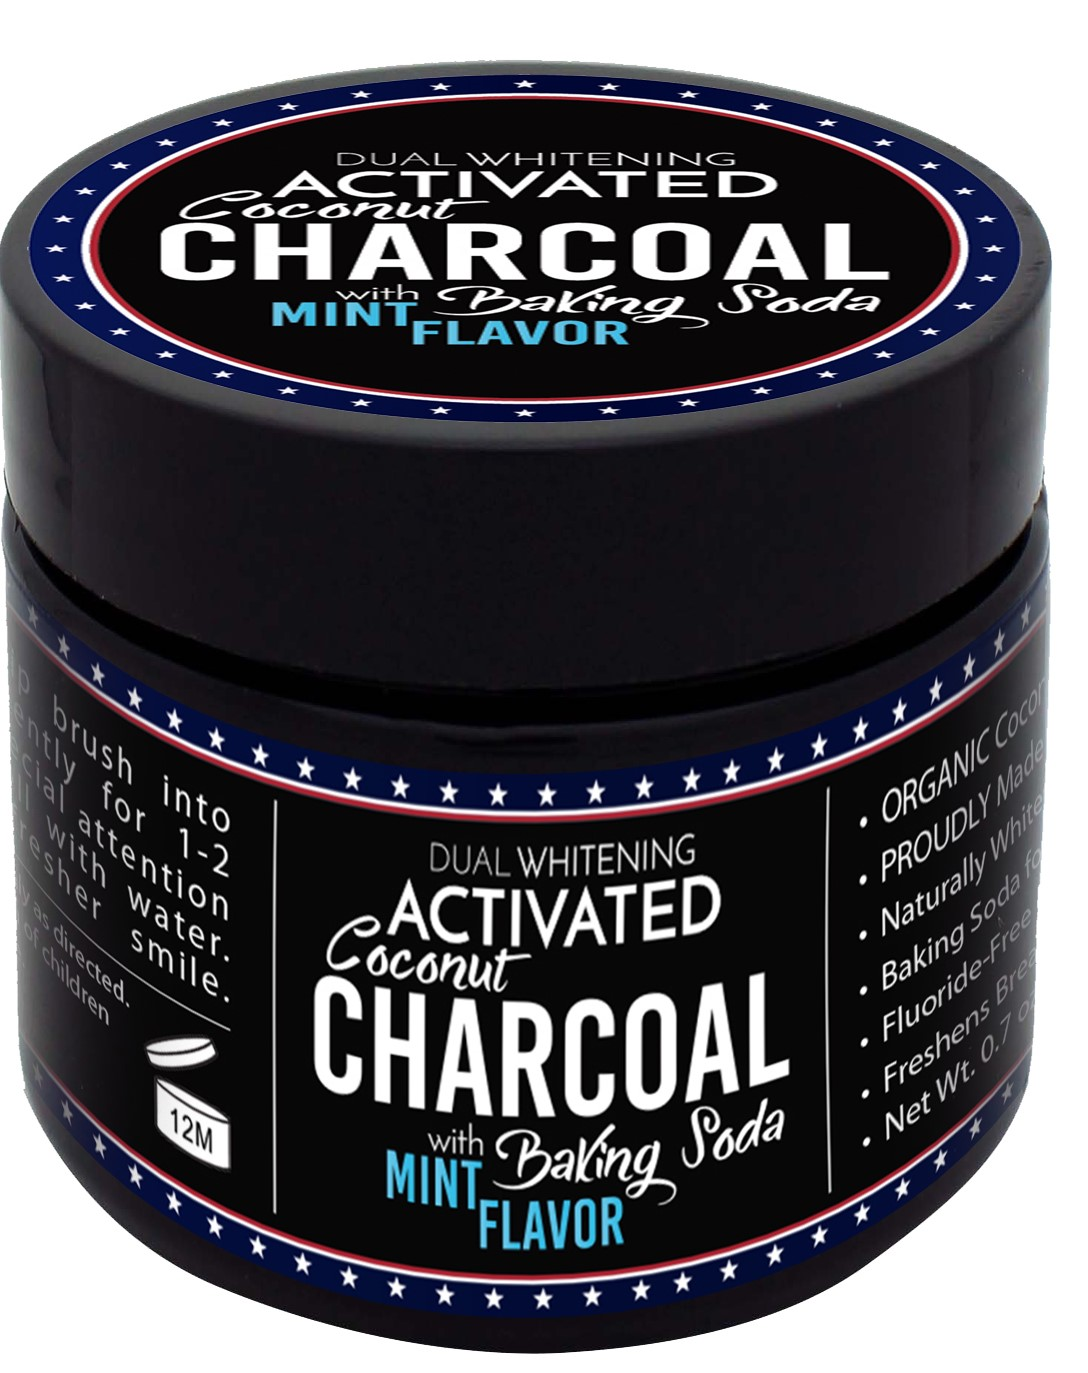 charcoal-front-new-jar-cropped.jpg